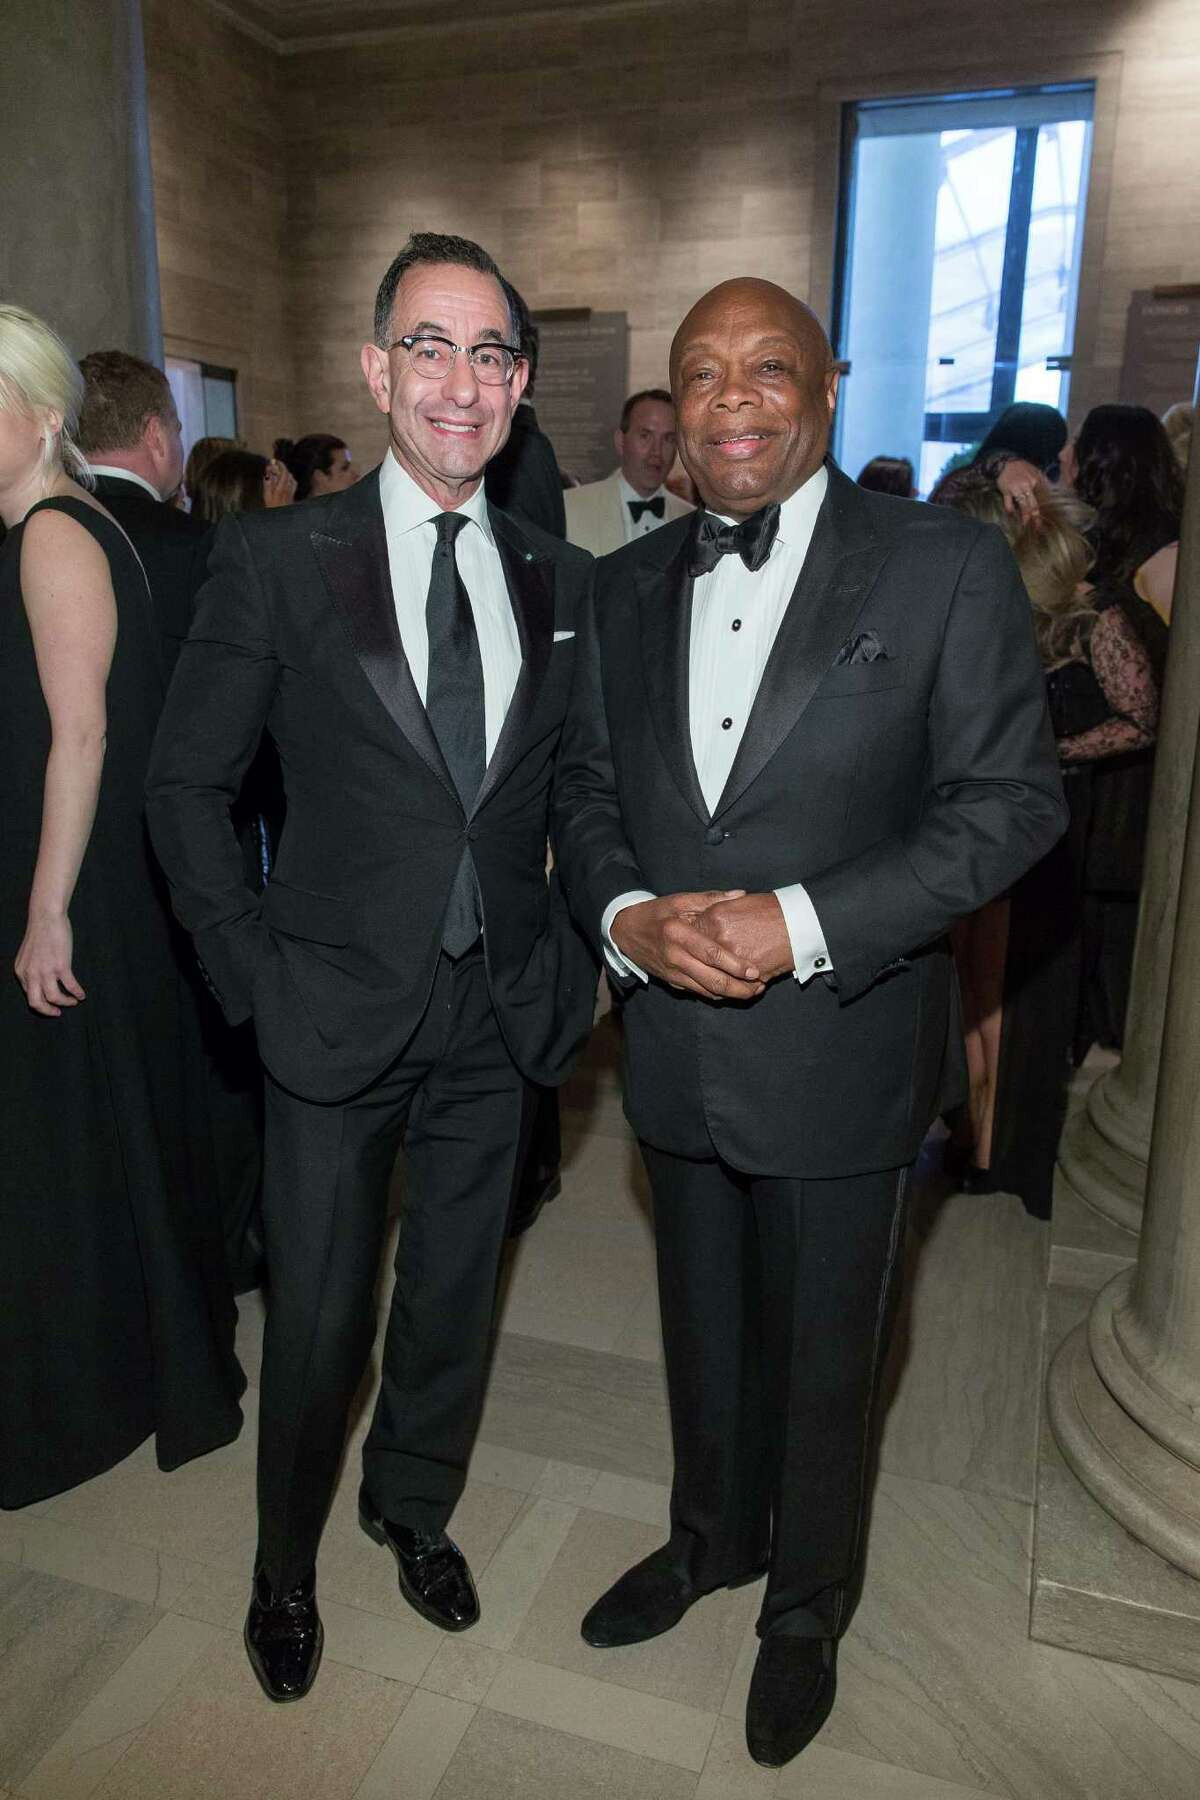 Colin Bailey and Willie Brown at the 2015 Mid-Winter Gala presented by Dior on March 27, 2015 at the Legion of Honor.